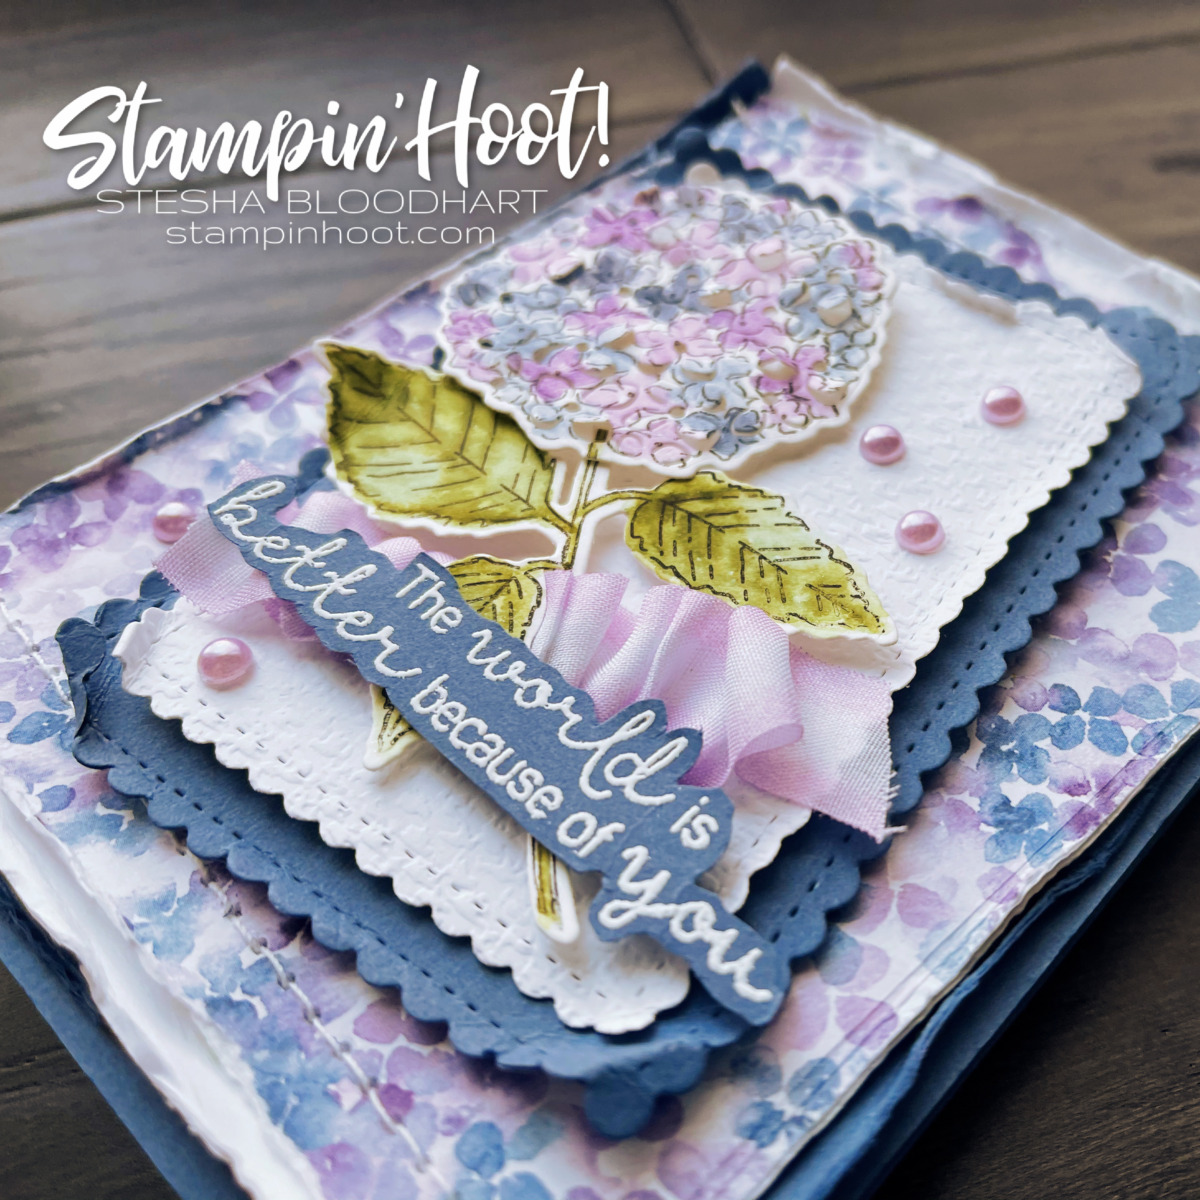 Hydrangea Haven Bundle from Stampin' Up! Birthday card by Stesha Bloodhart, Stampin' Hoot!